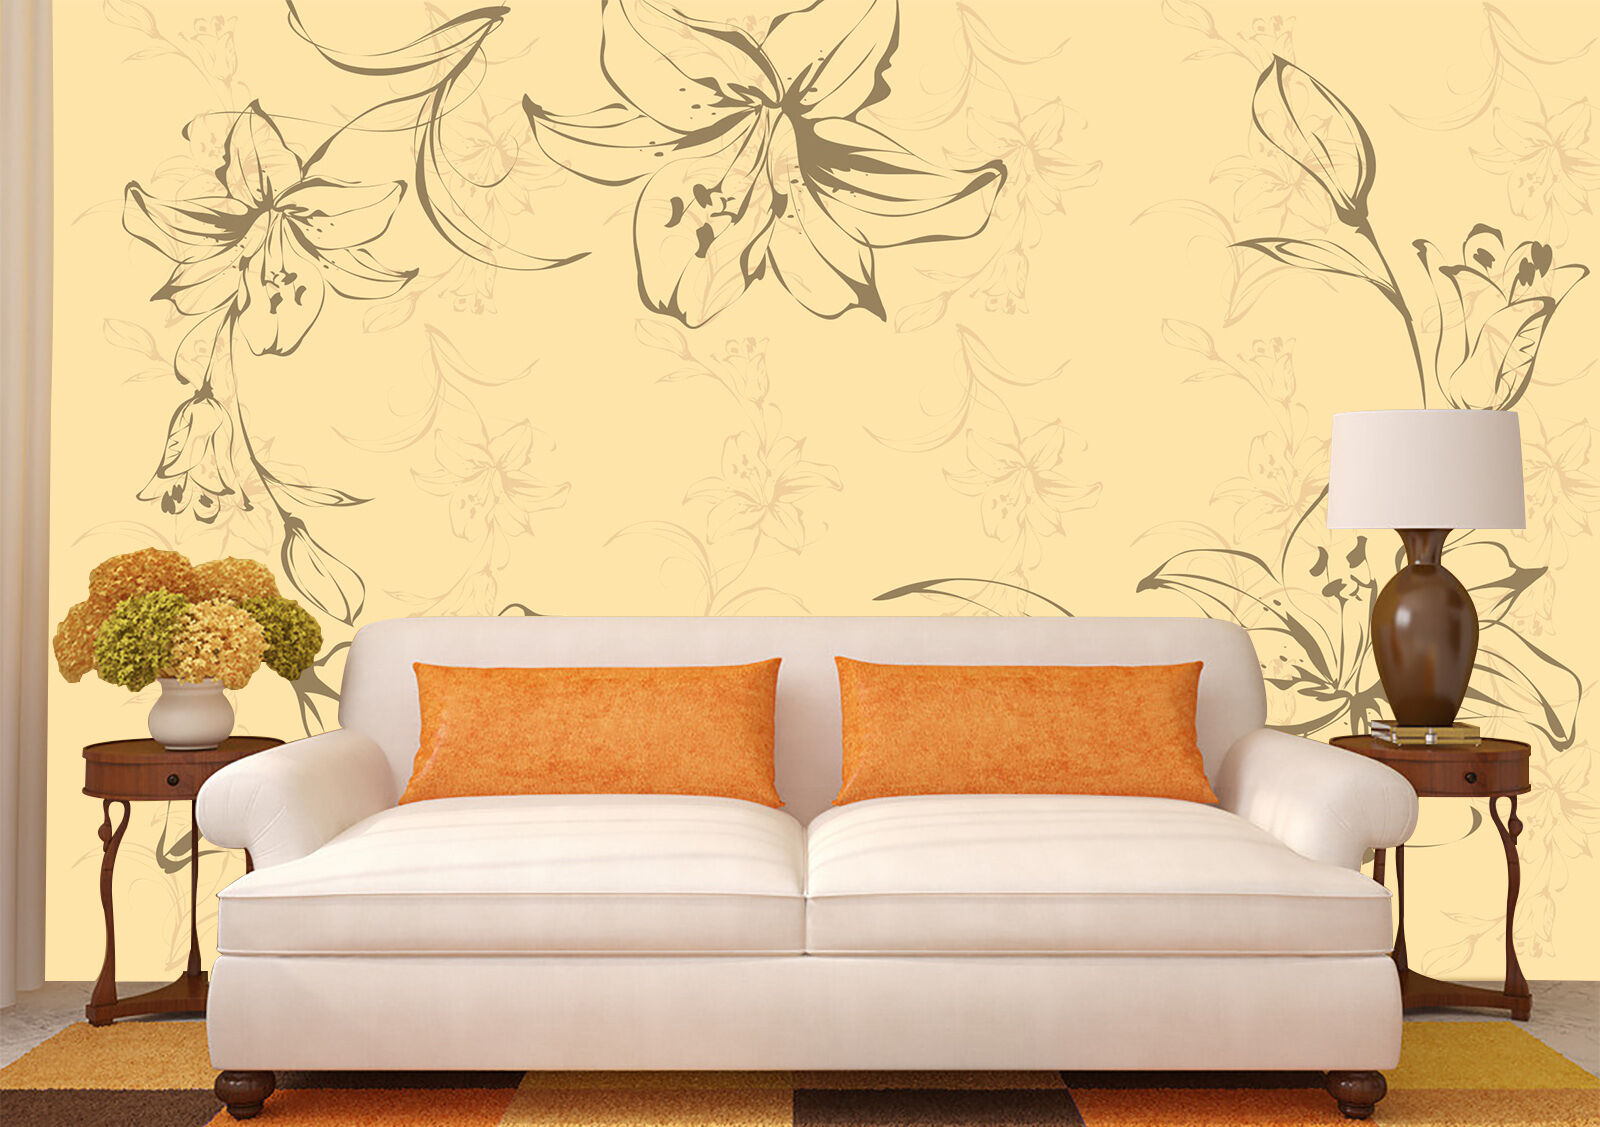 3D flower Texture cloth Retro Wall Paper Print Decal Wall Deco Indoor wall Mural